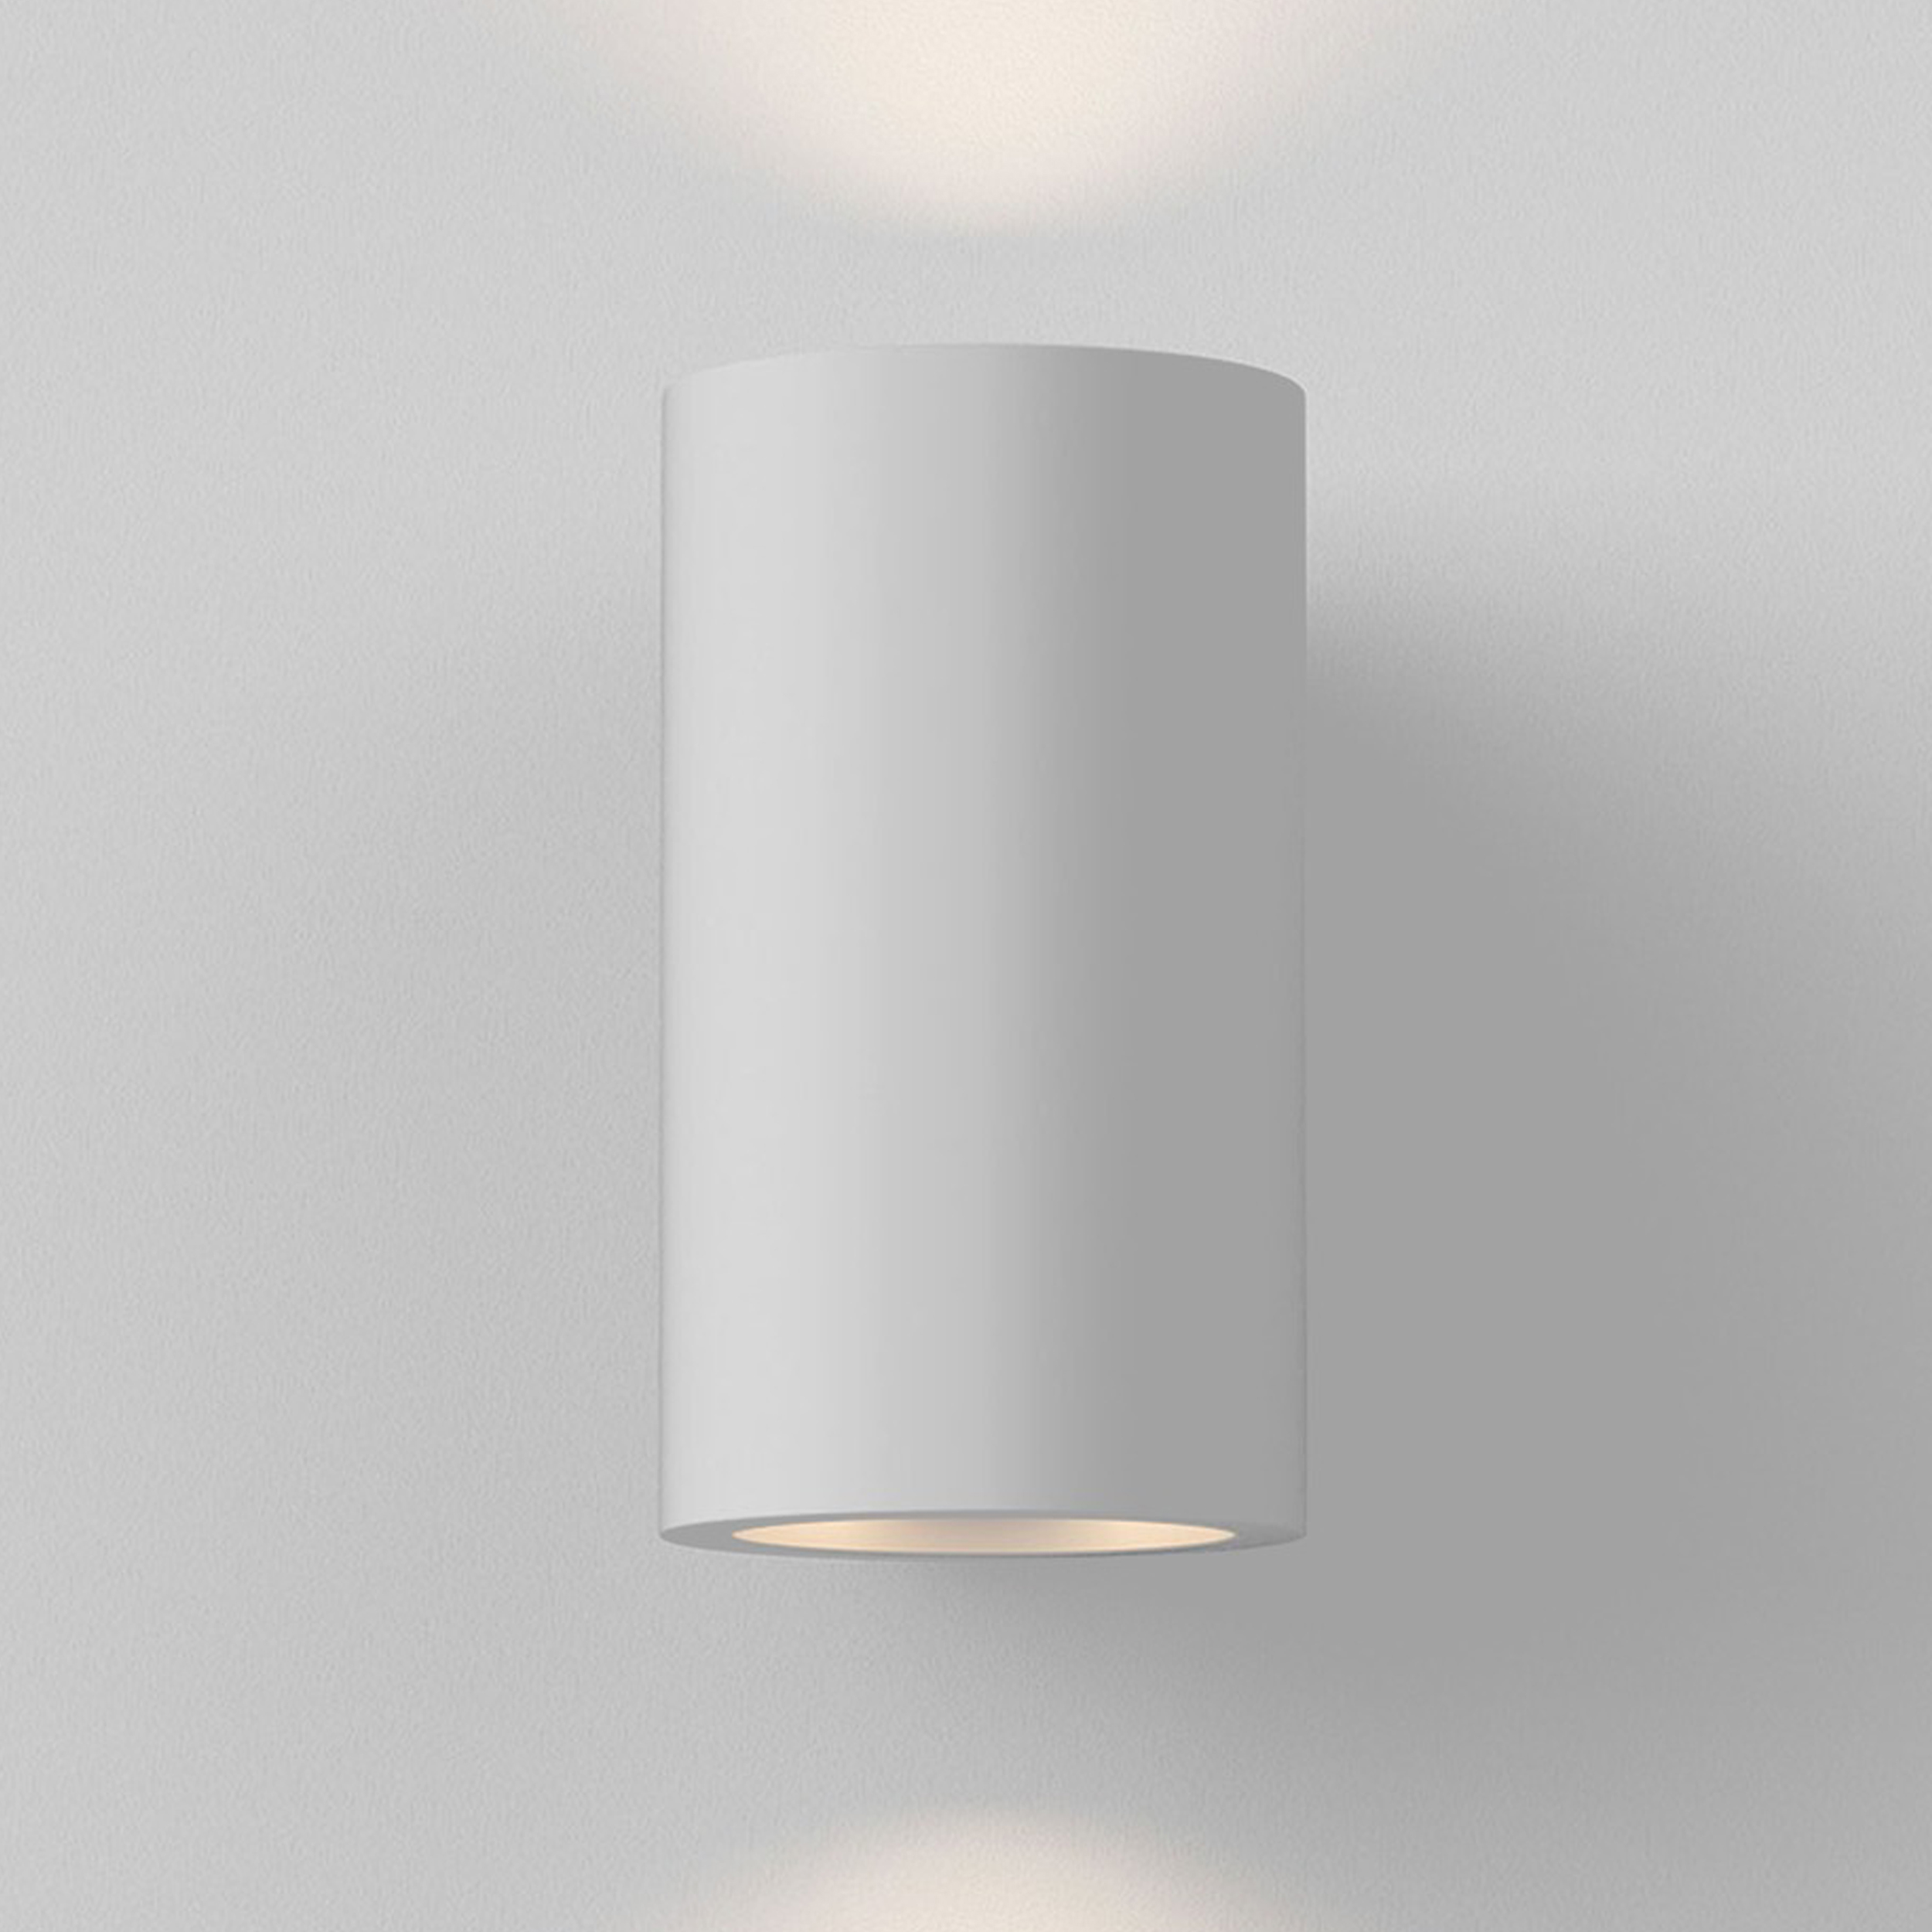 Astro Bologna 160 Led Wall Light White Plaster D